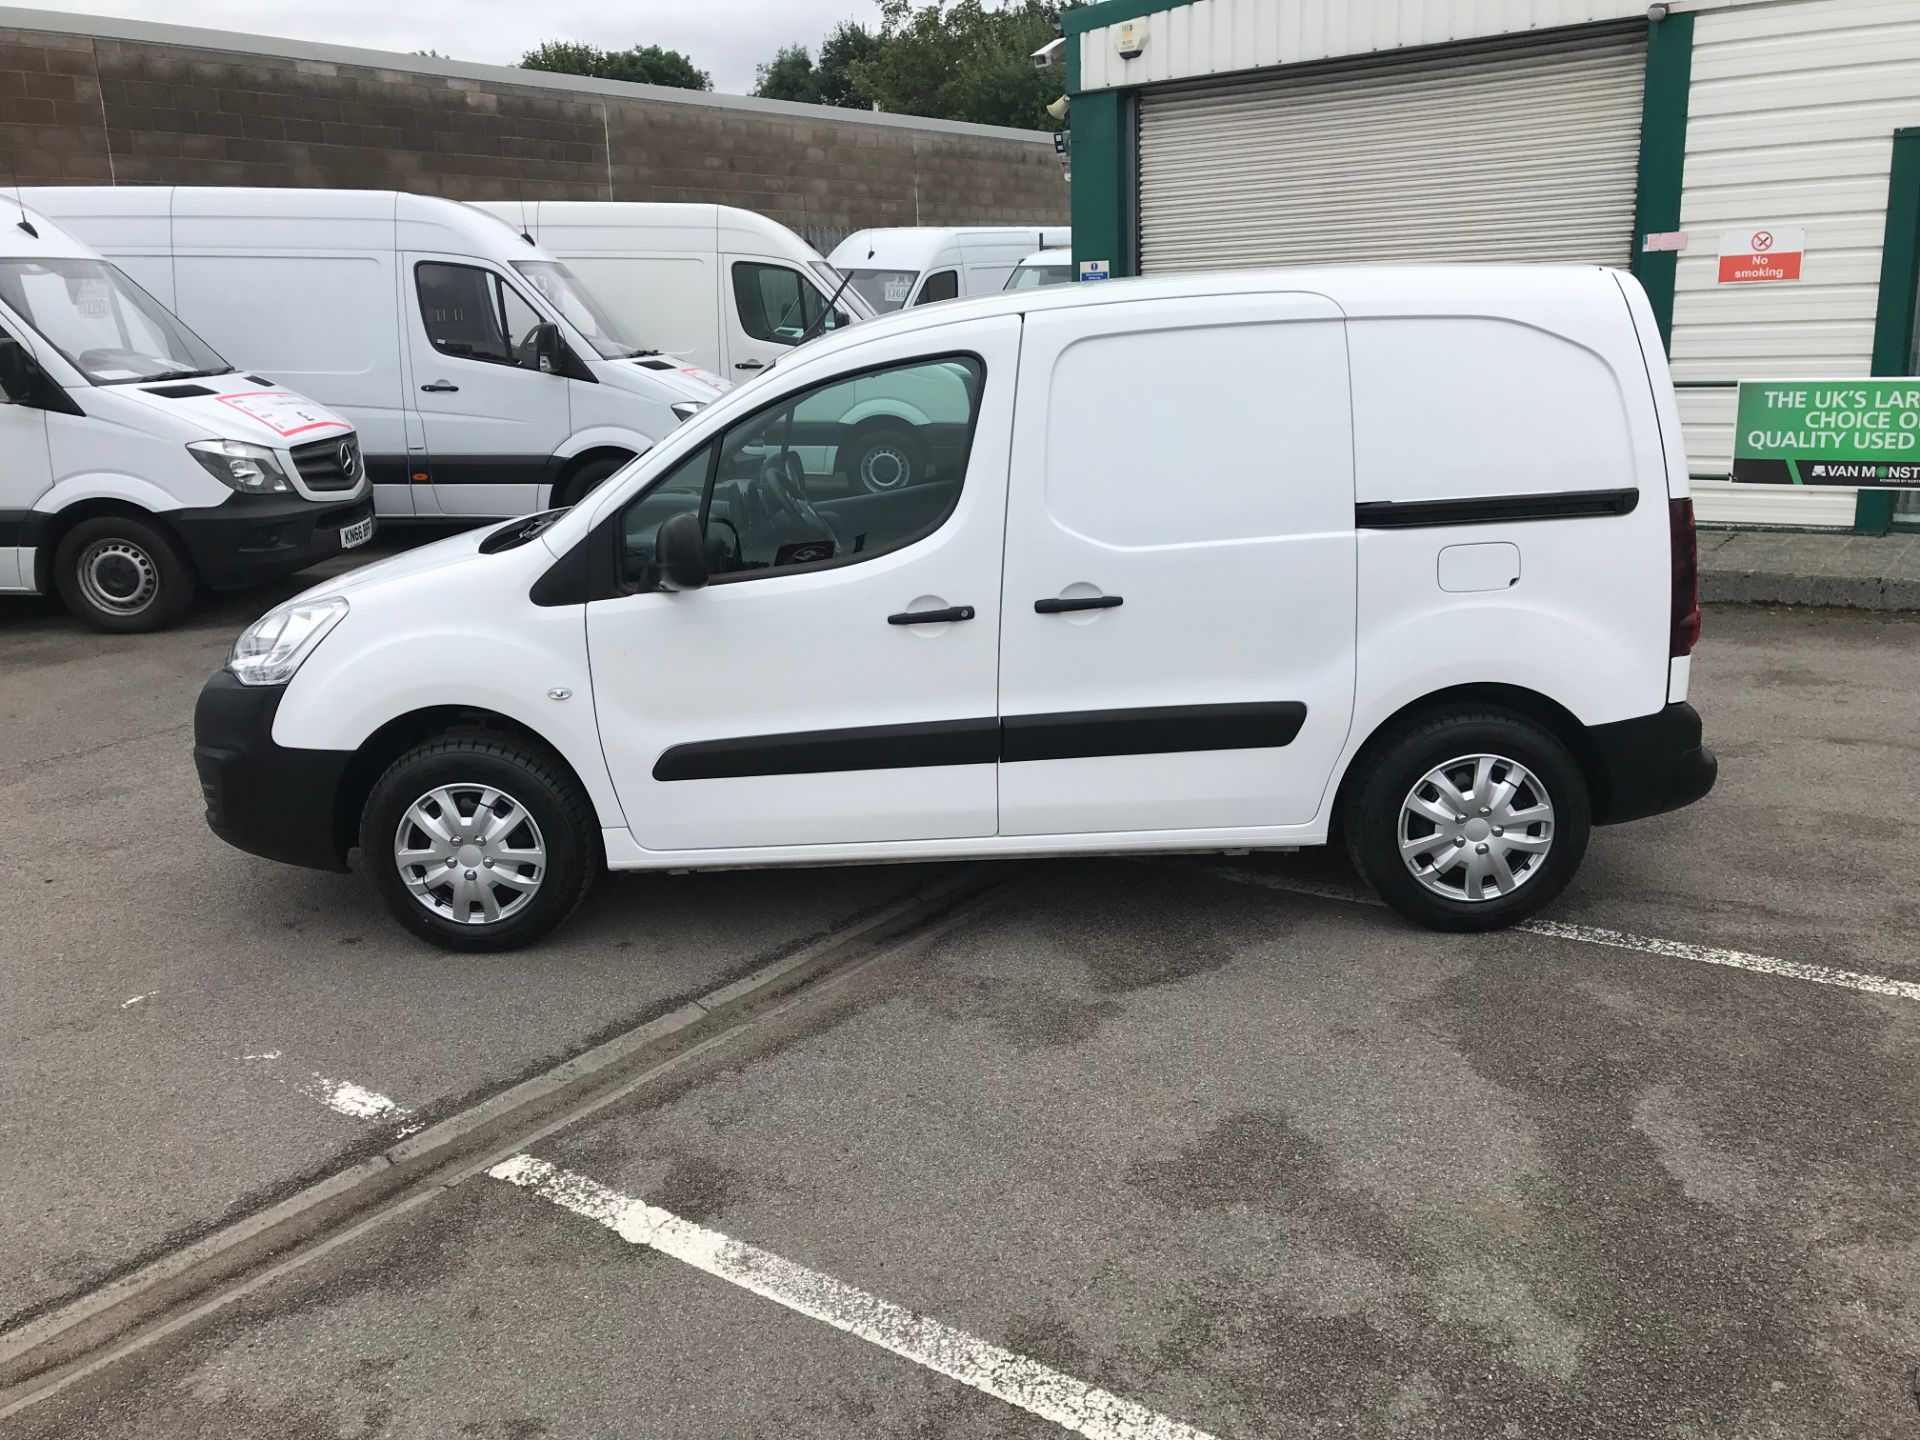 2016 Citroen Berlingo L1 DIESEL 1.6 HDI 625KG ENTERPRISE 75PS EURO 4/5 (SR16BKE) Image 19